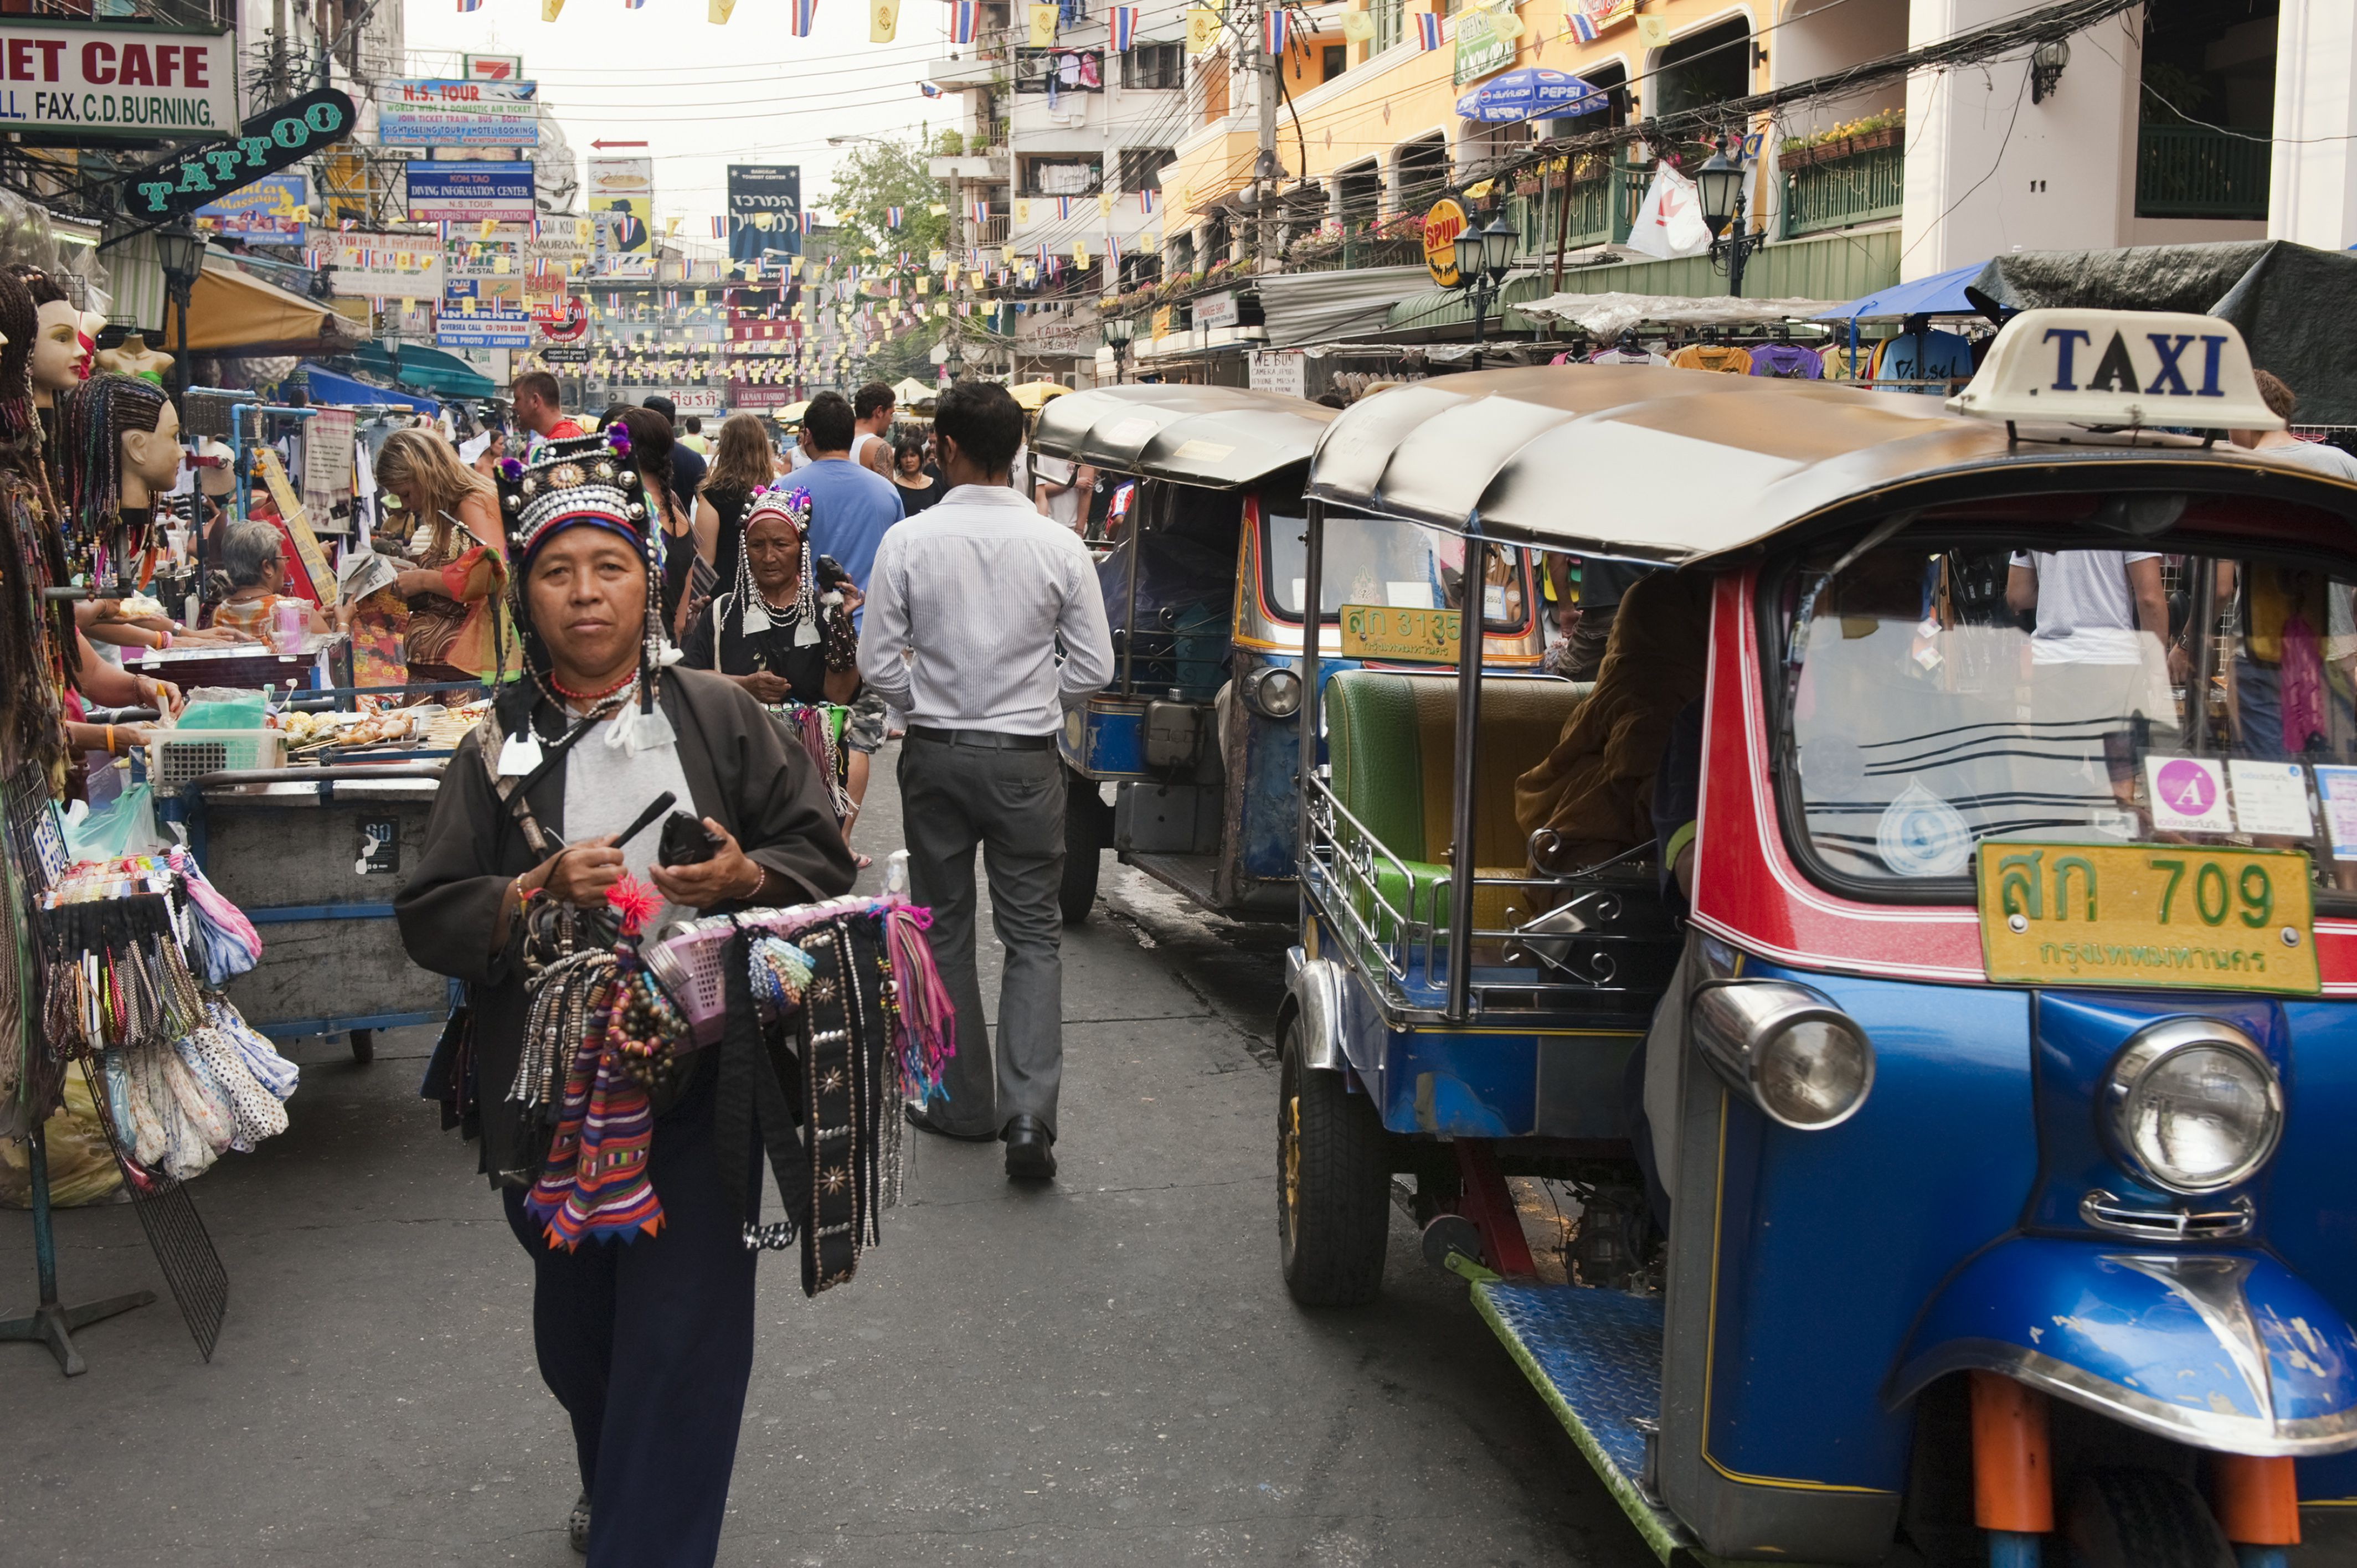 Koh San Or Khao San Road In Bangkok Which Is Correct